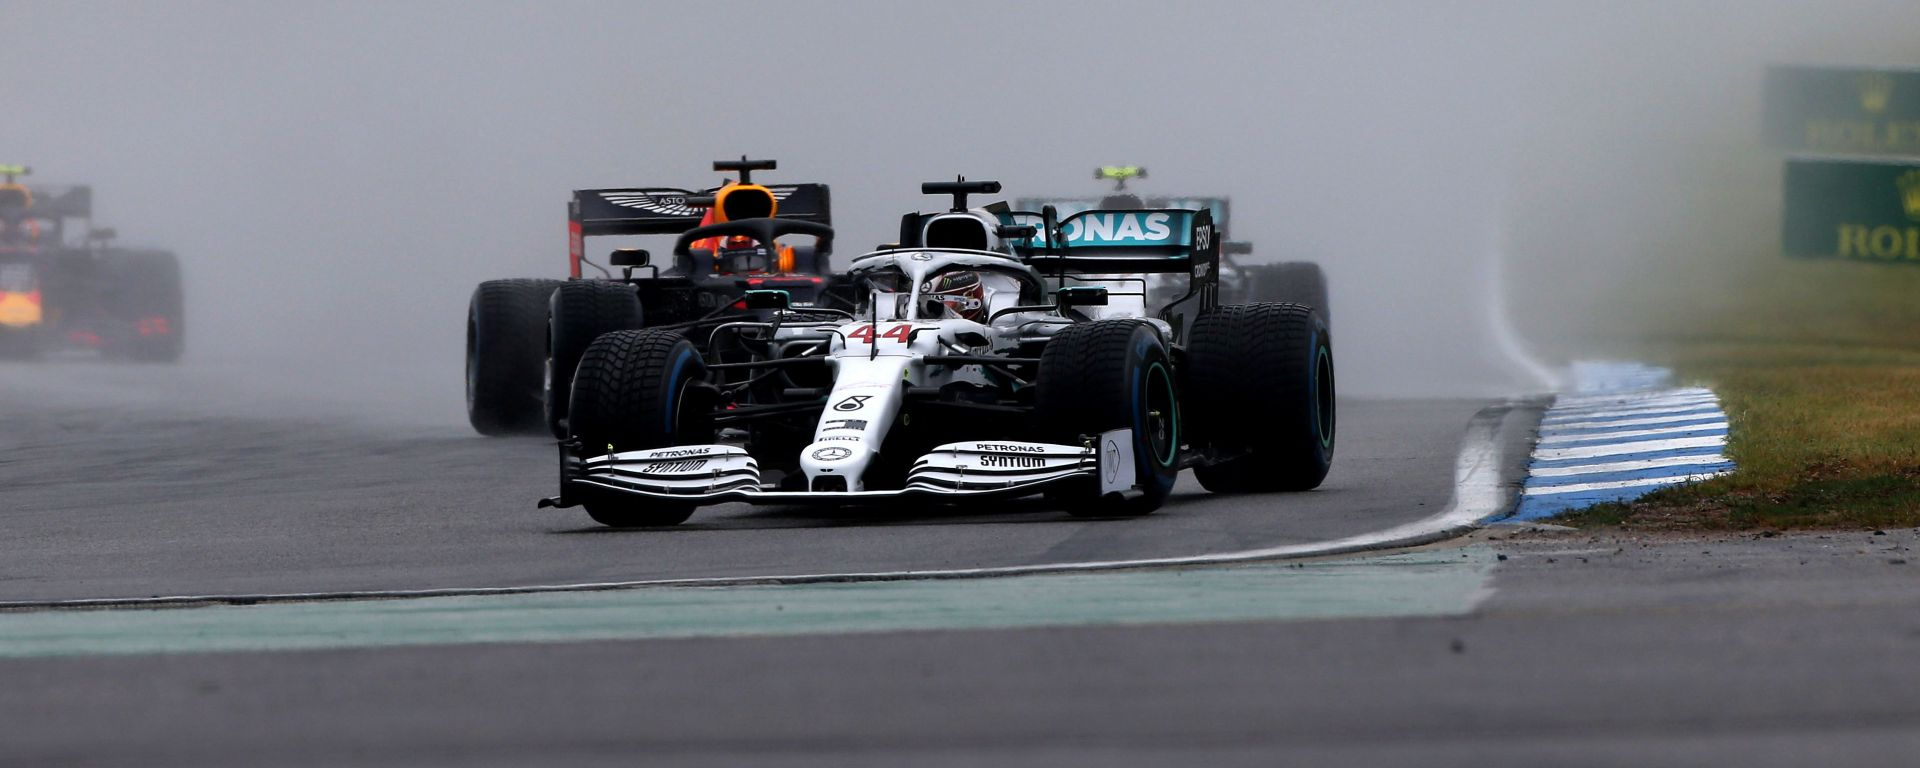 Hamilton (Mercedes) su pista bagnata in Germania